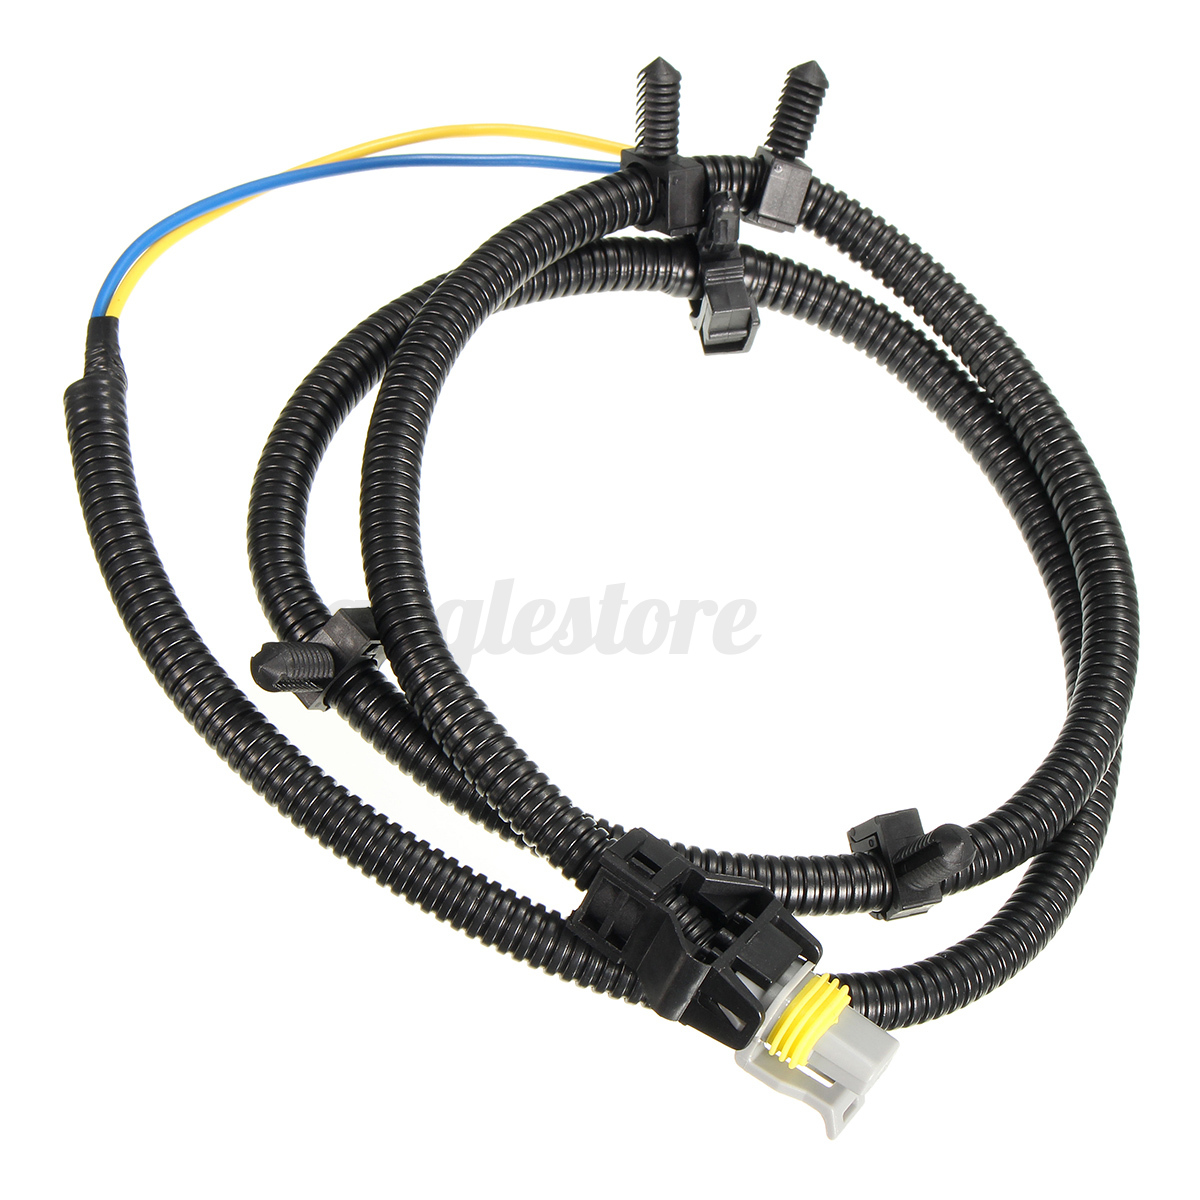 2003 buick rendezvous abs wiring diagram diagramming indirect objects 2x wheel speed sensor wire harness plug pigtail for